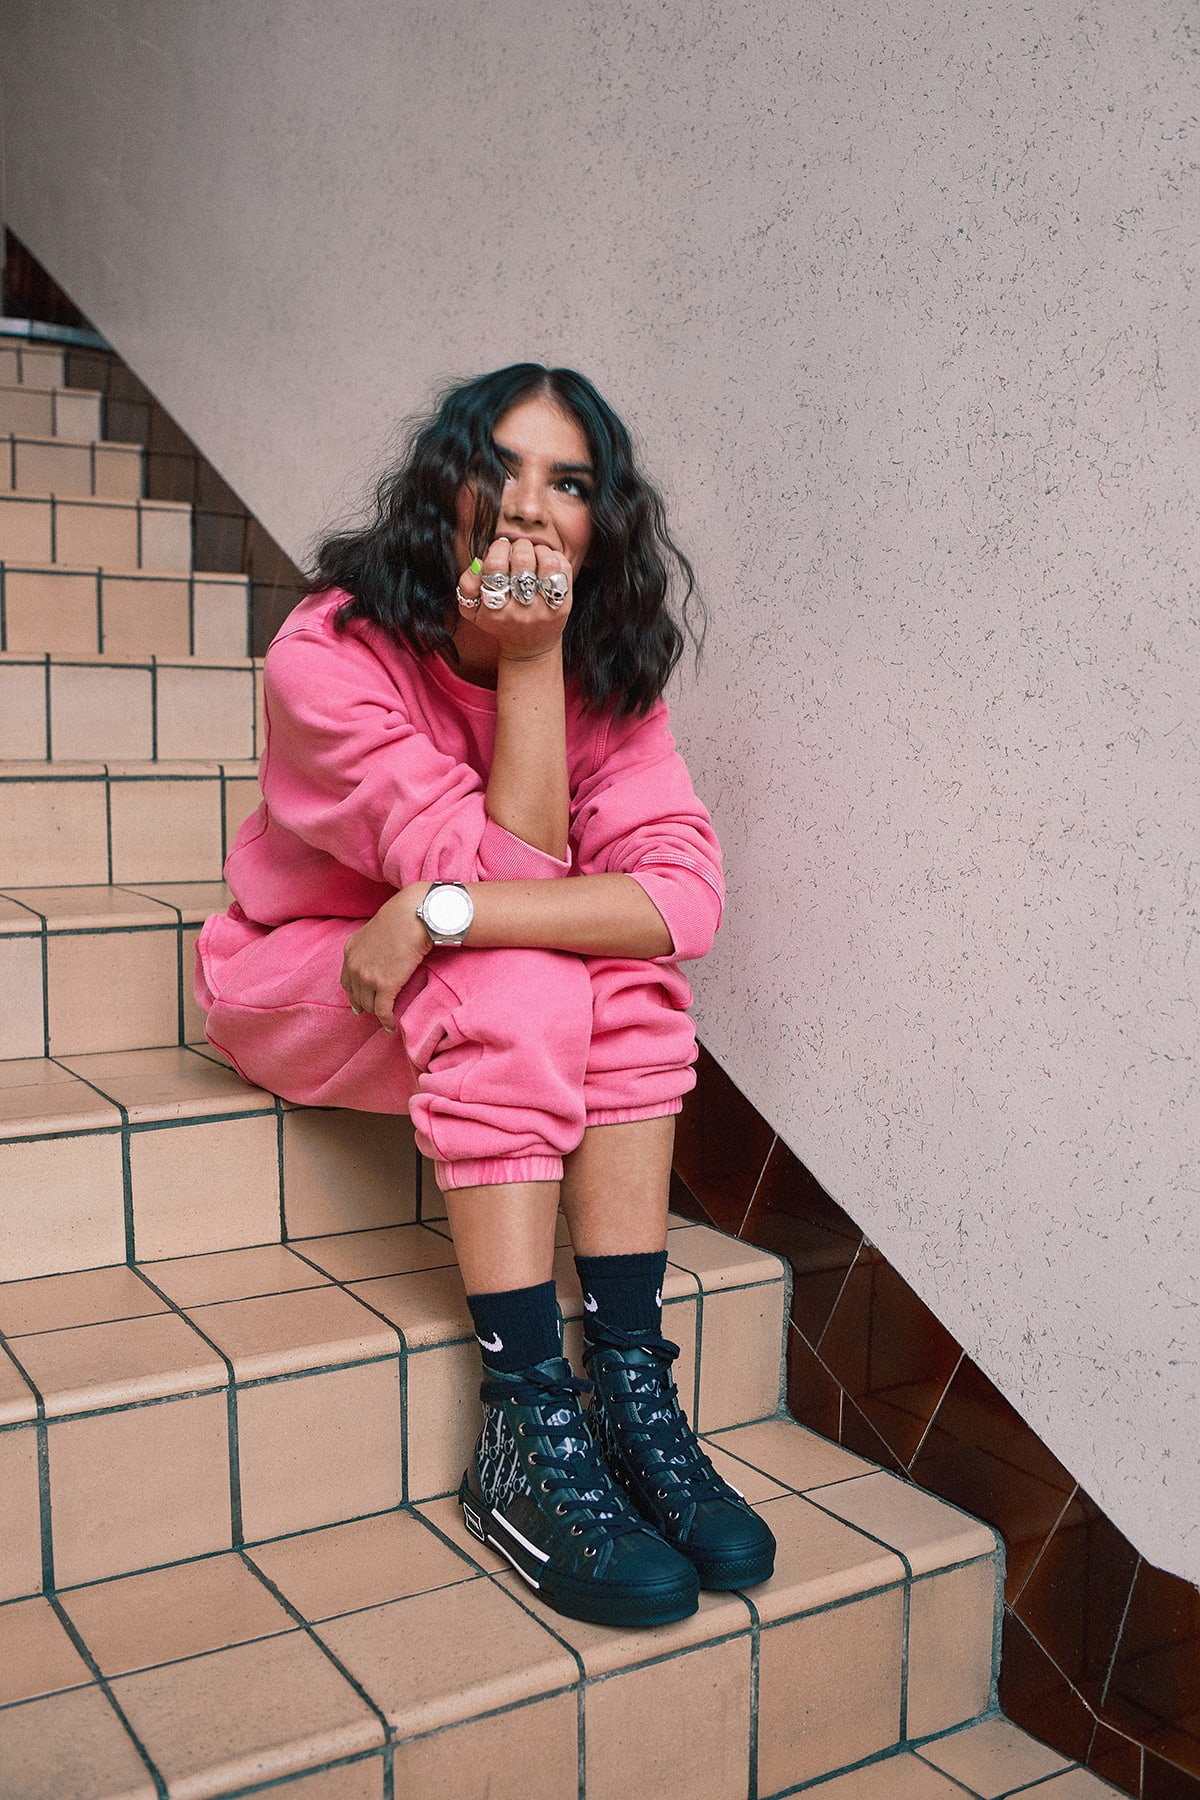 La La wearing STUSSY Stock Logo Tracksuit DIOR B23 High-Top Oblique Sneakers for END.